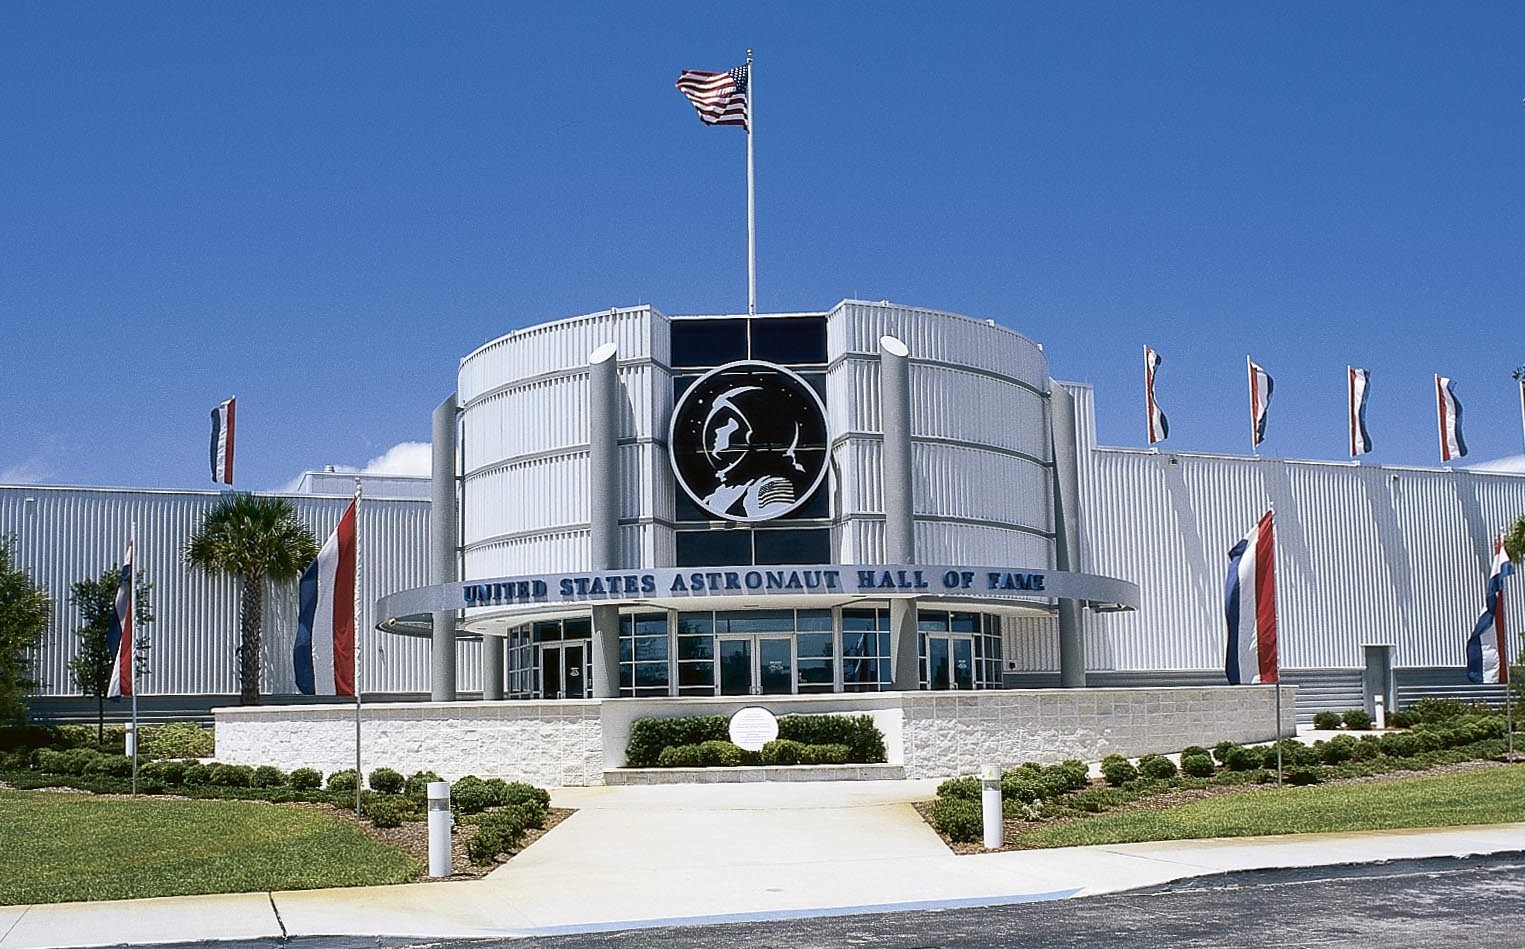 Astronaut Hall of Fame exterior